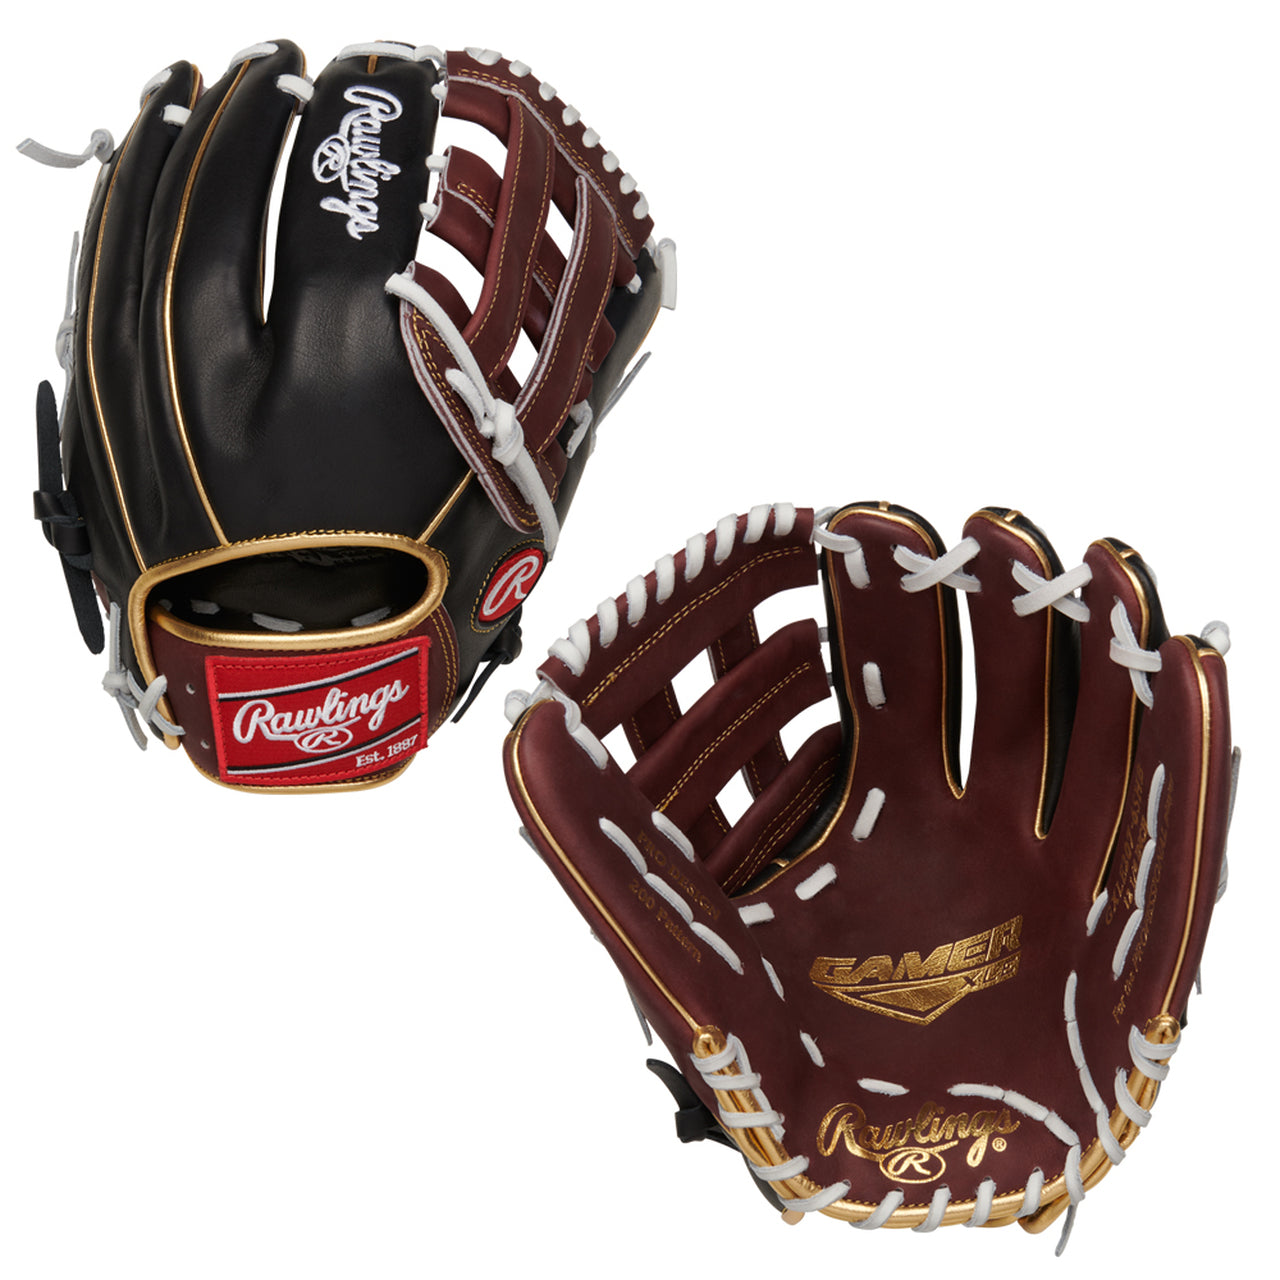 "Rawlings Gamer XLE 12.25"" Baseball Glove GXLE207-6SHB"